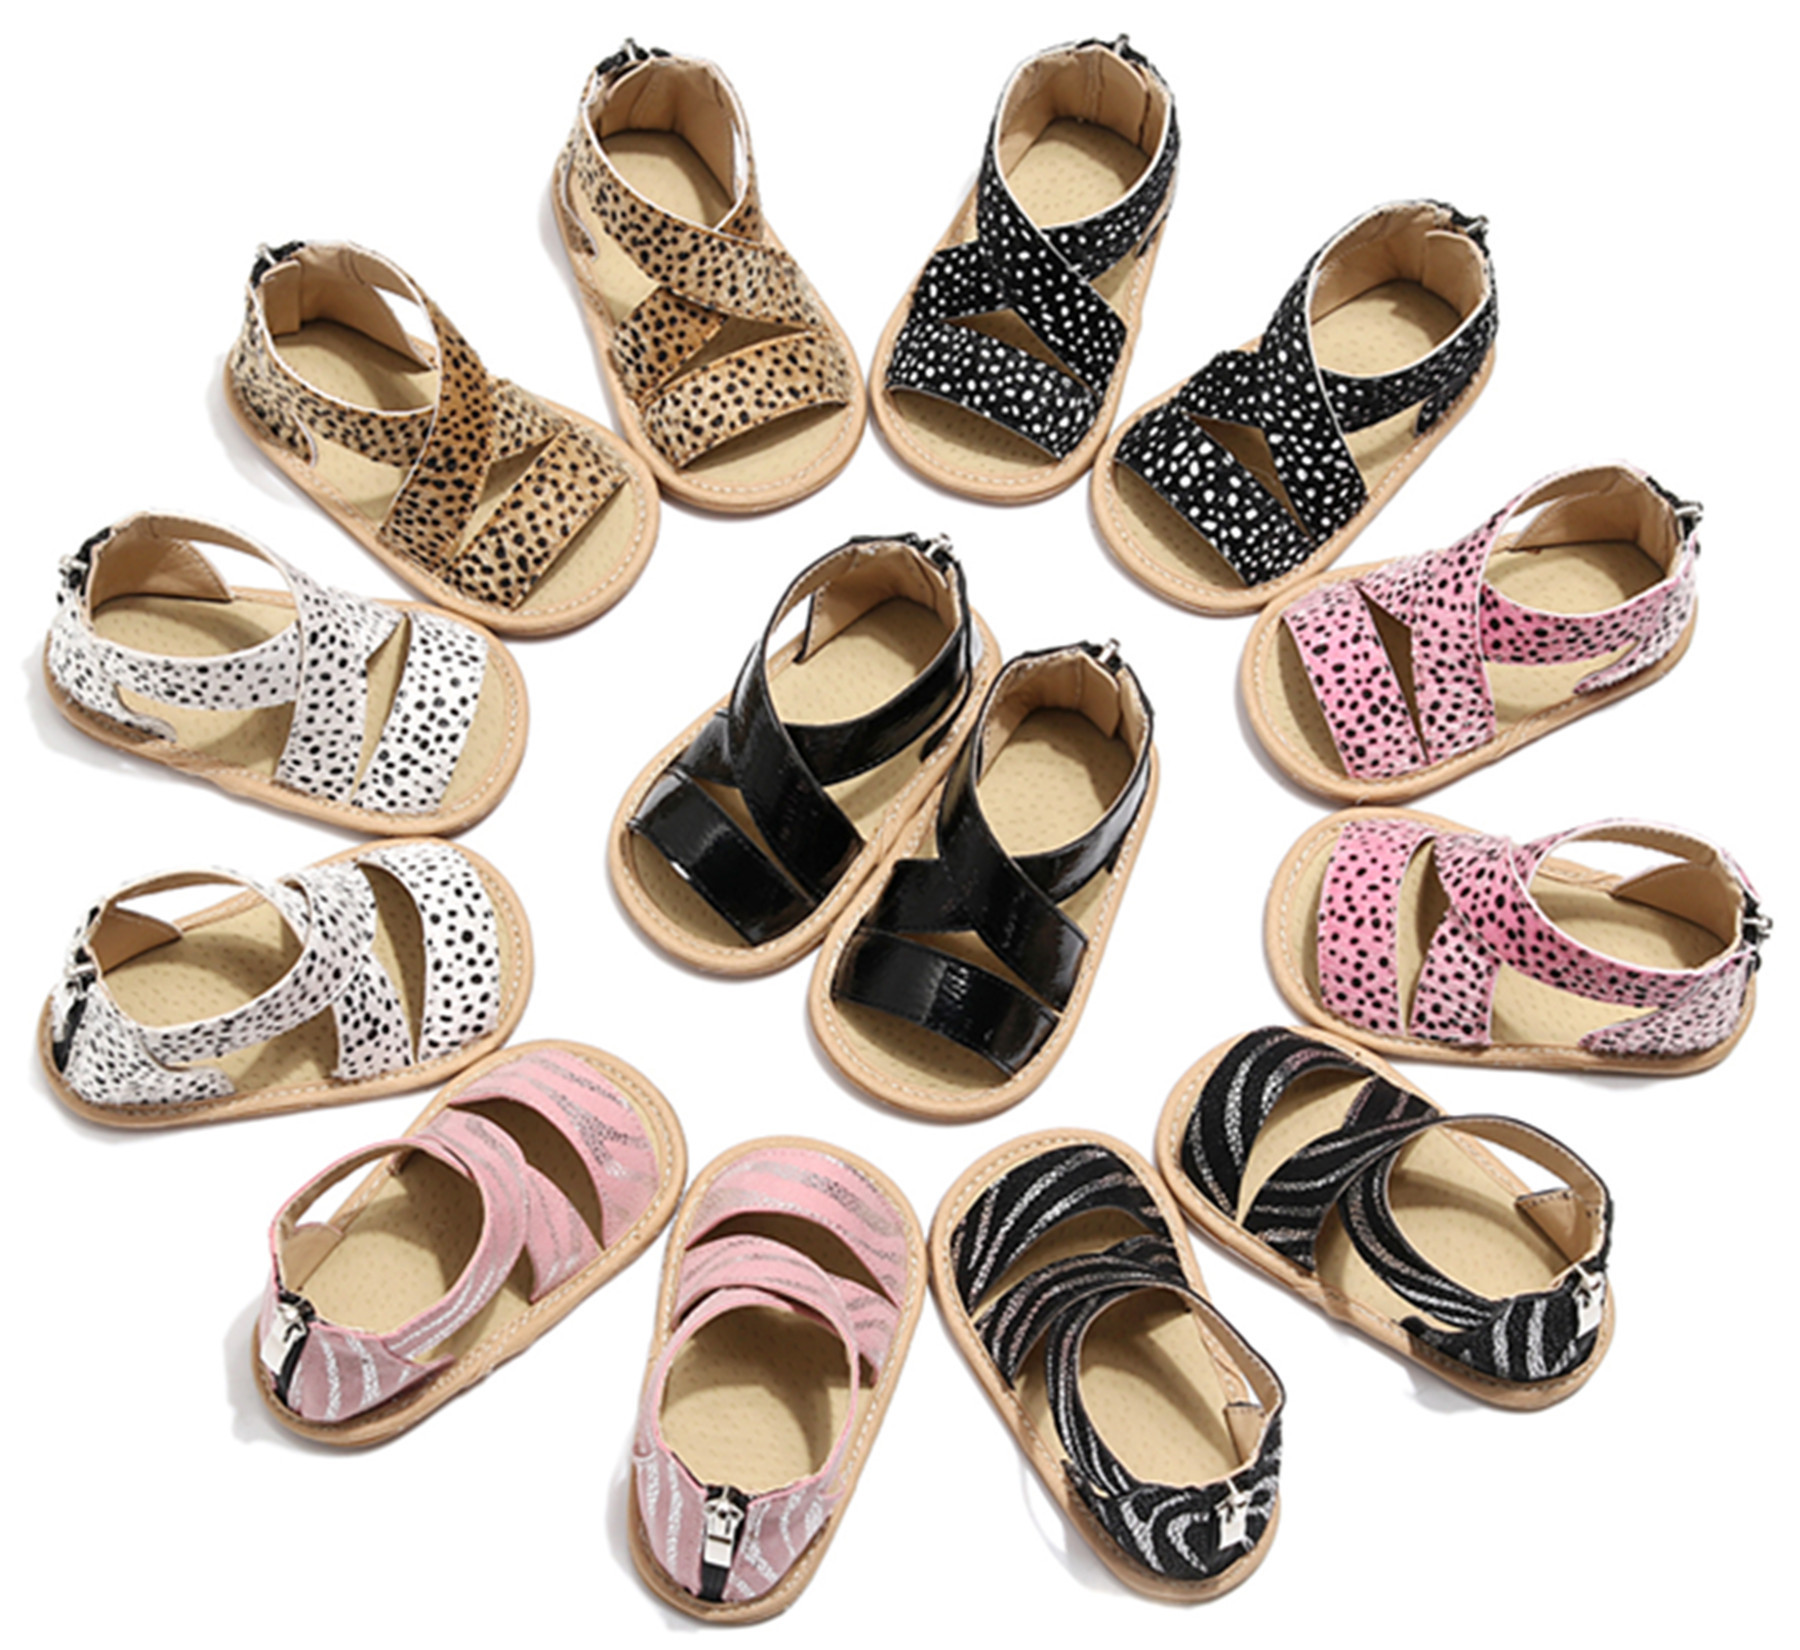 2020 European And American Popular Leopard Print Baby Sandals Infant Toddler Crib Shoes Soft Baby First Walkers Baby Moccasins